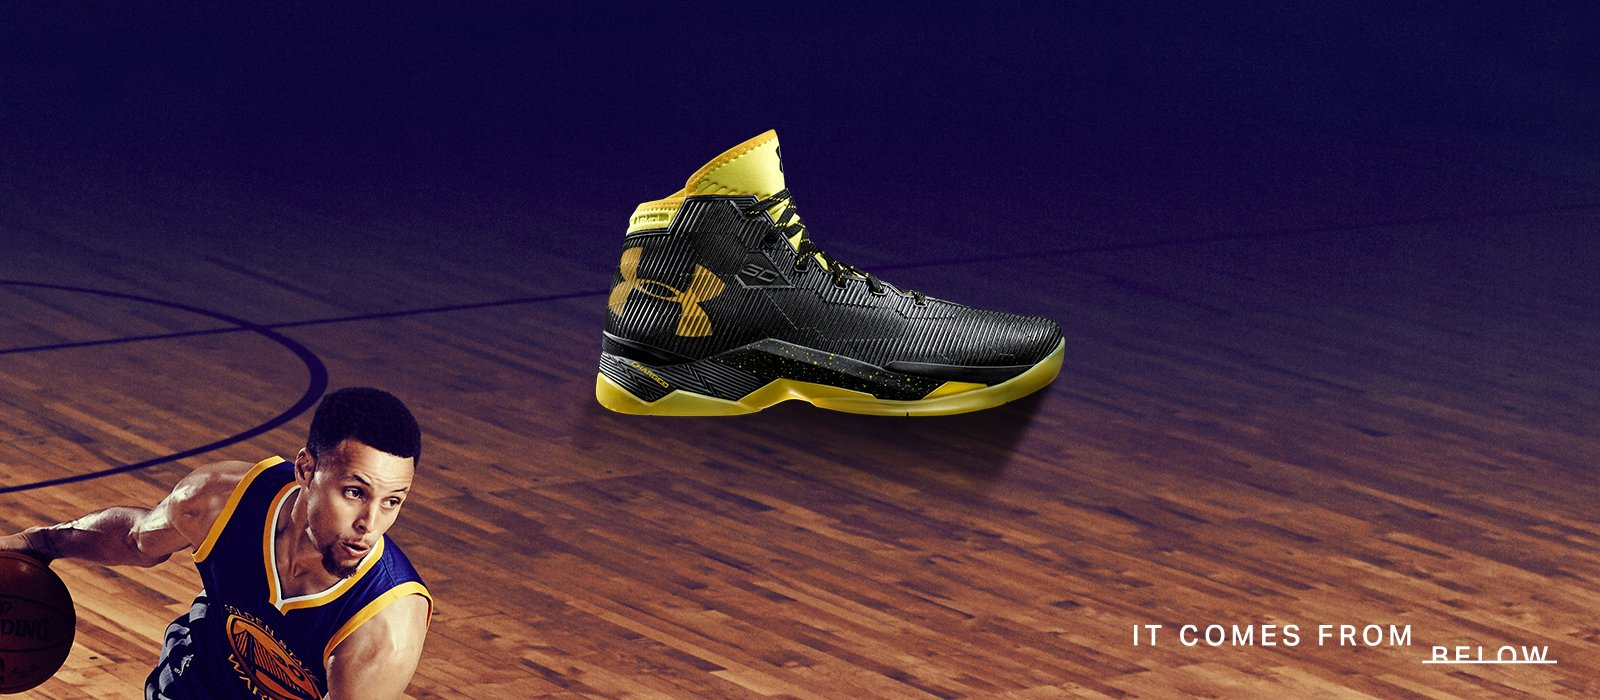 Under Armour Just Released the Curry 2.5 'Black Taxi'-1